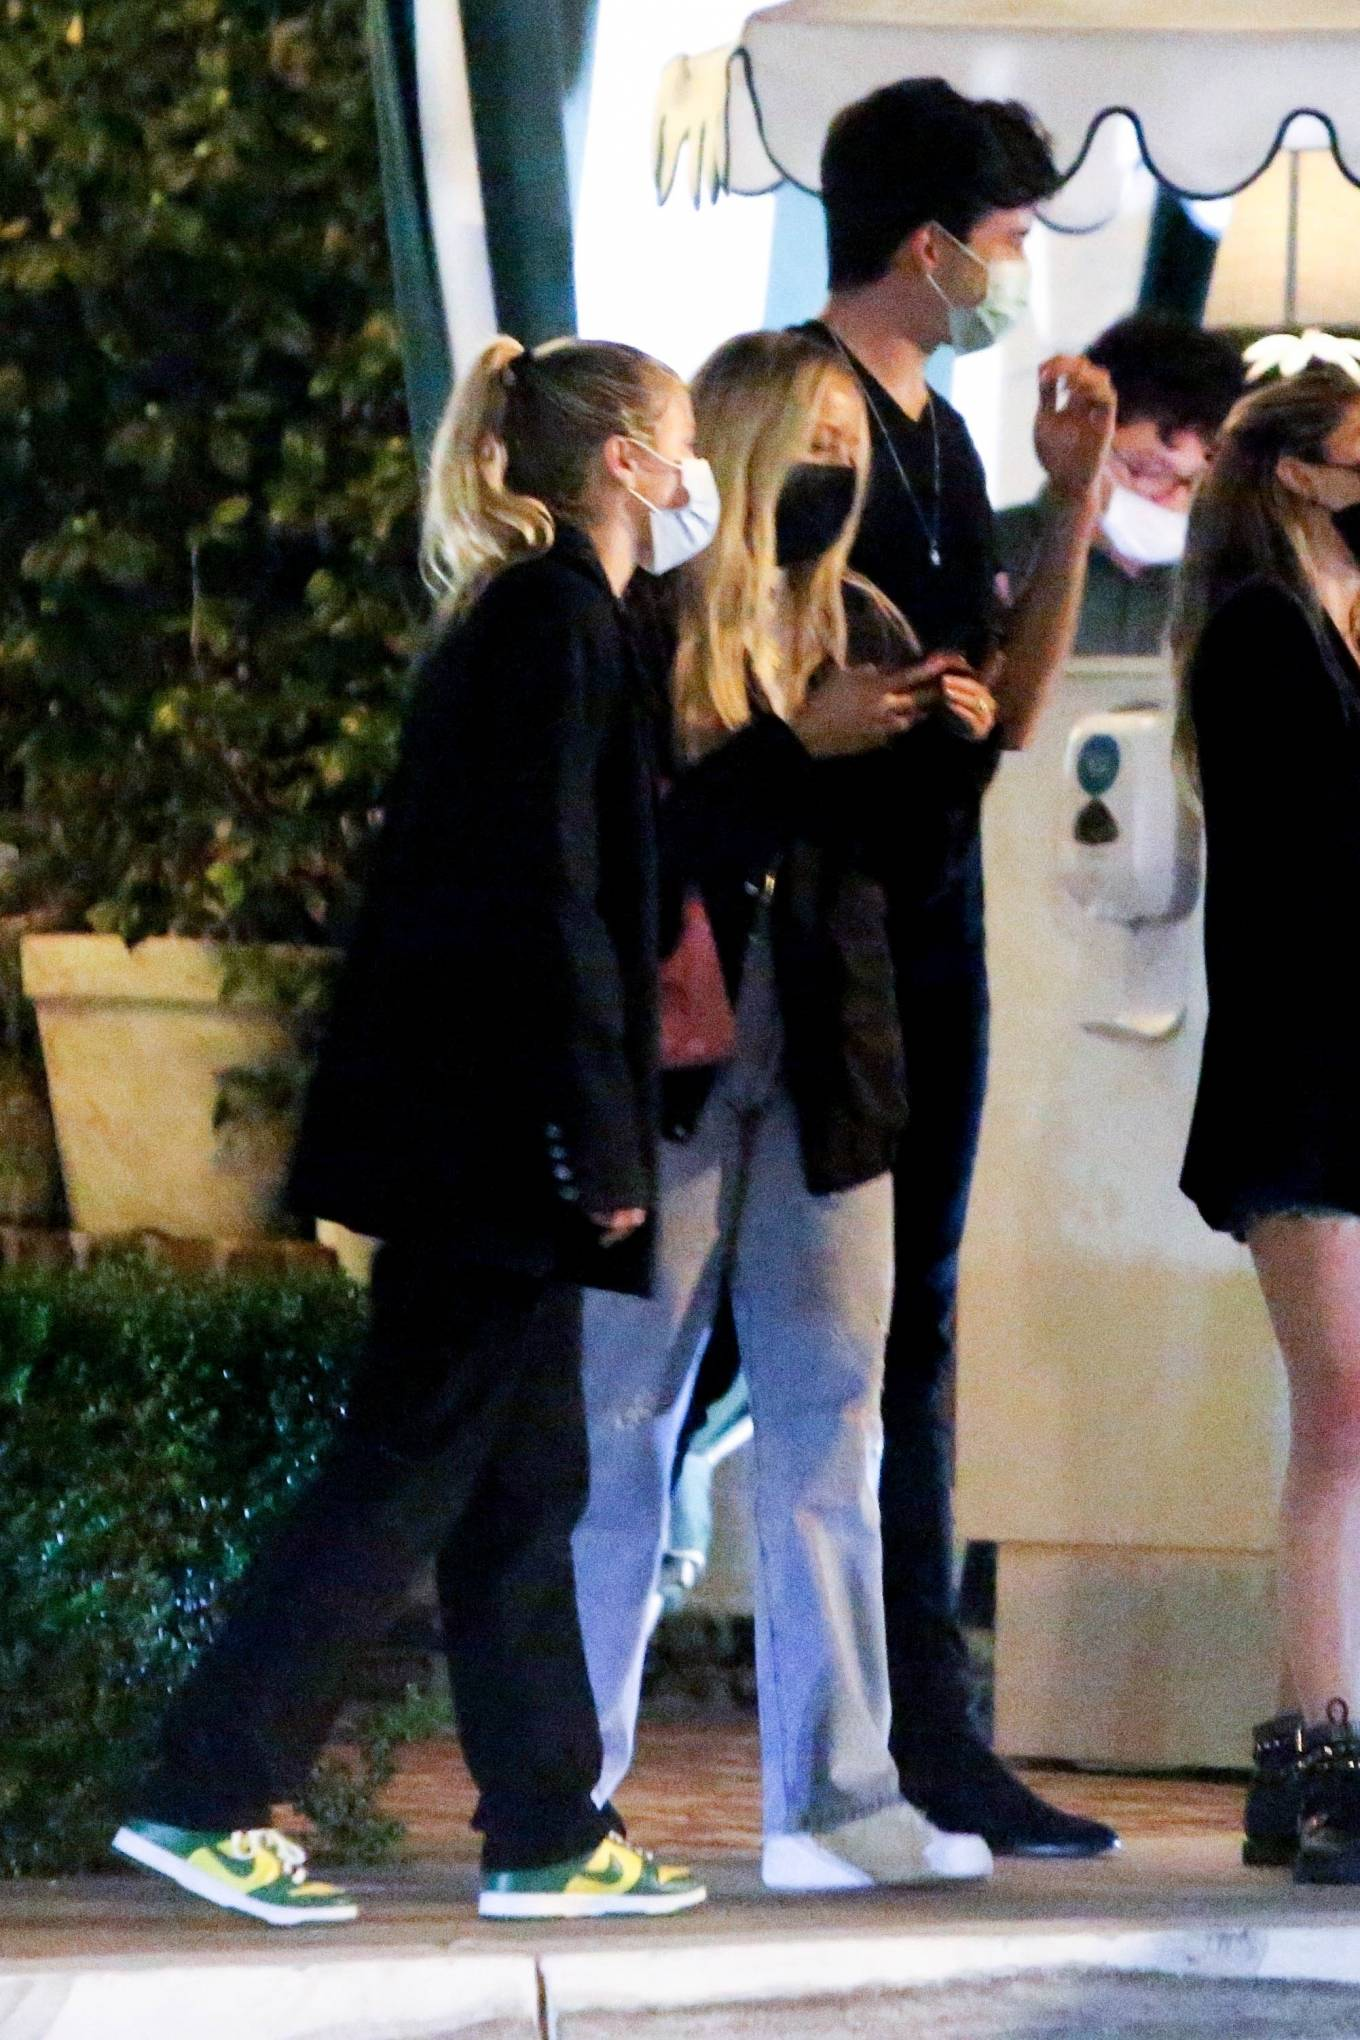 Sofia Richie and Jaden Smith - Spotted together in West Hollywood